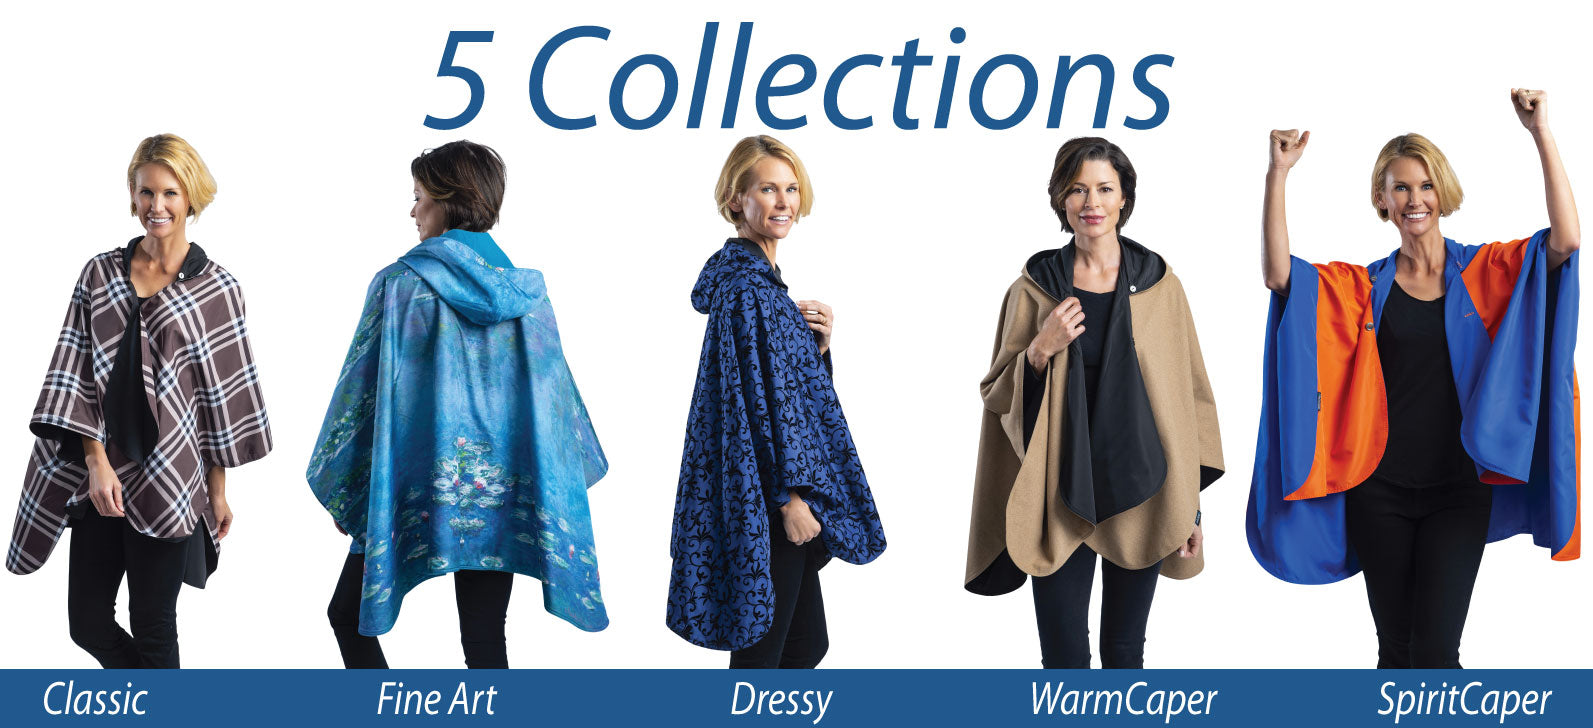 Image of five women wearing cute rain ponchos. One is a plaid cape, another is a blue raincoat, one is a camel rain jacket and one blue raincoat bears Monet Water Lilies artwork while another woman wears a dressy rain cape.